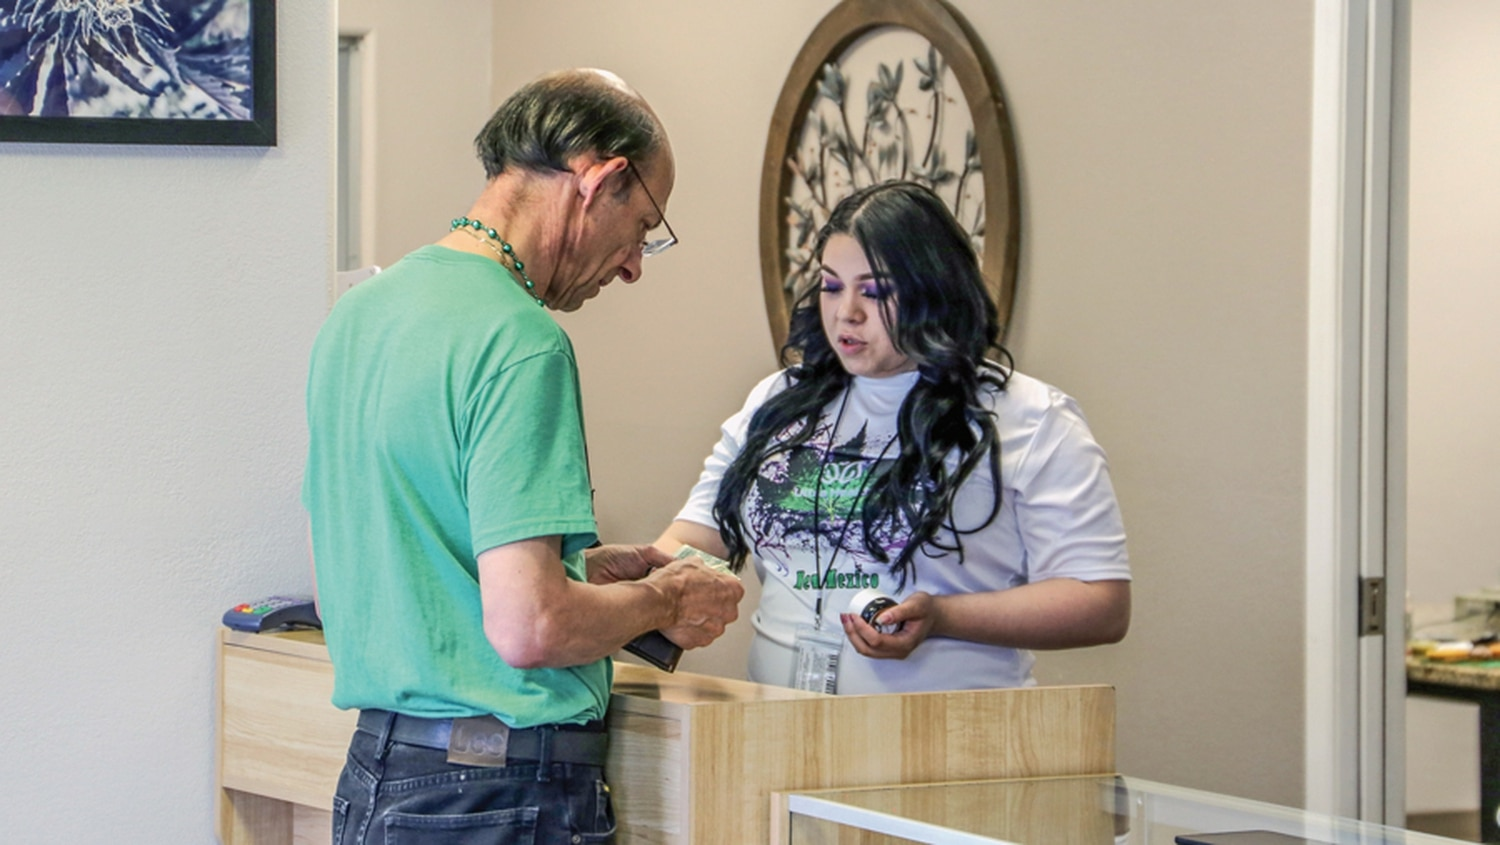 Patient John Reid consults with a budtender at Ultra Health on 4/20. Reid says product shortage has not affected him the way it has some other patients.